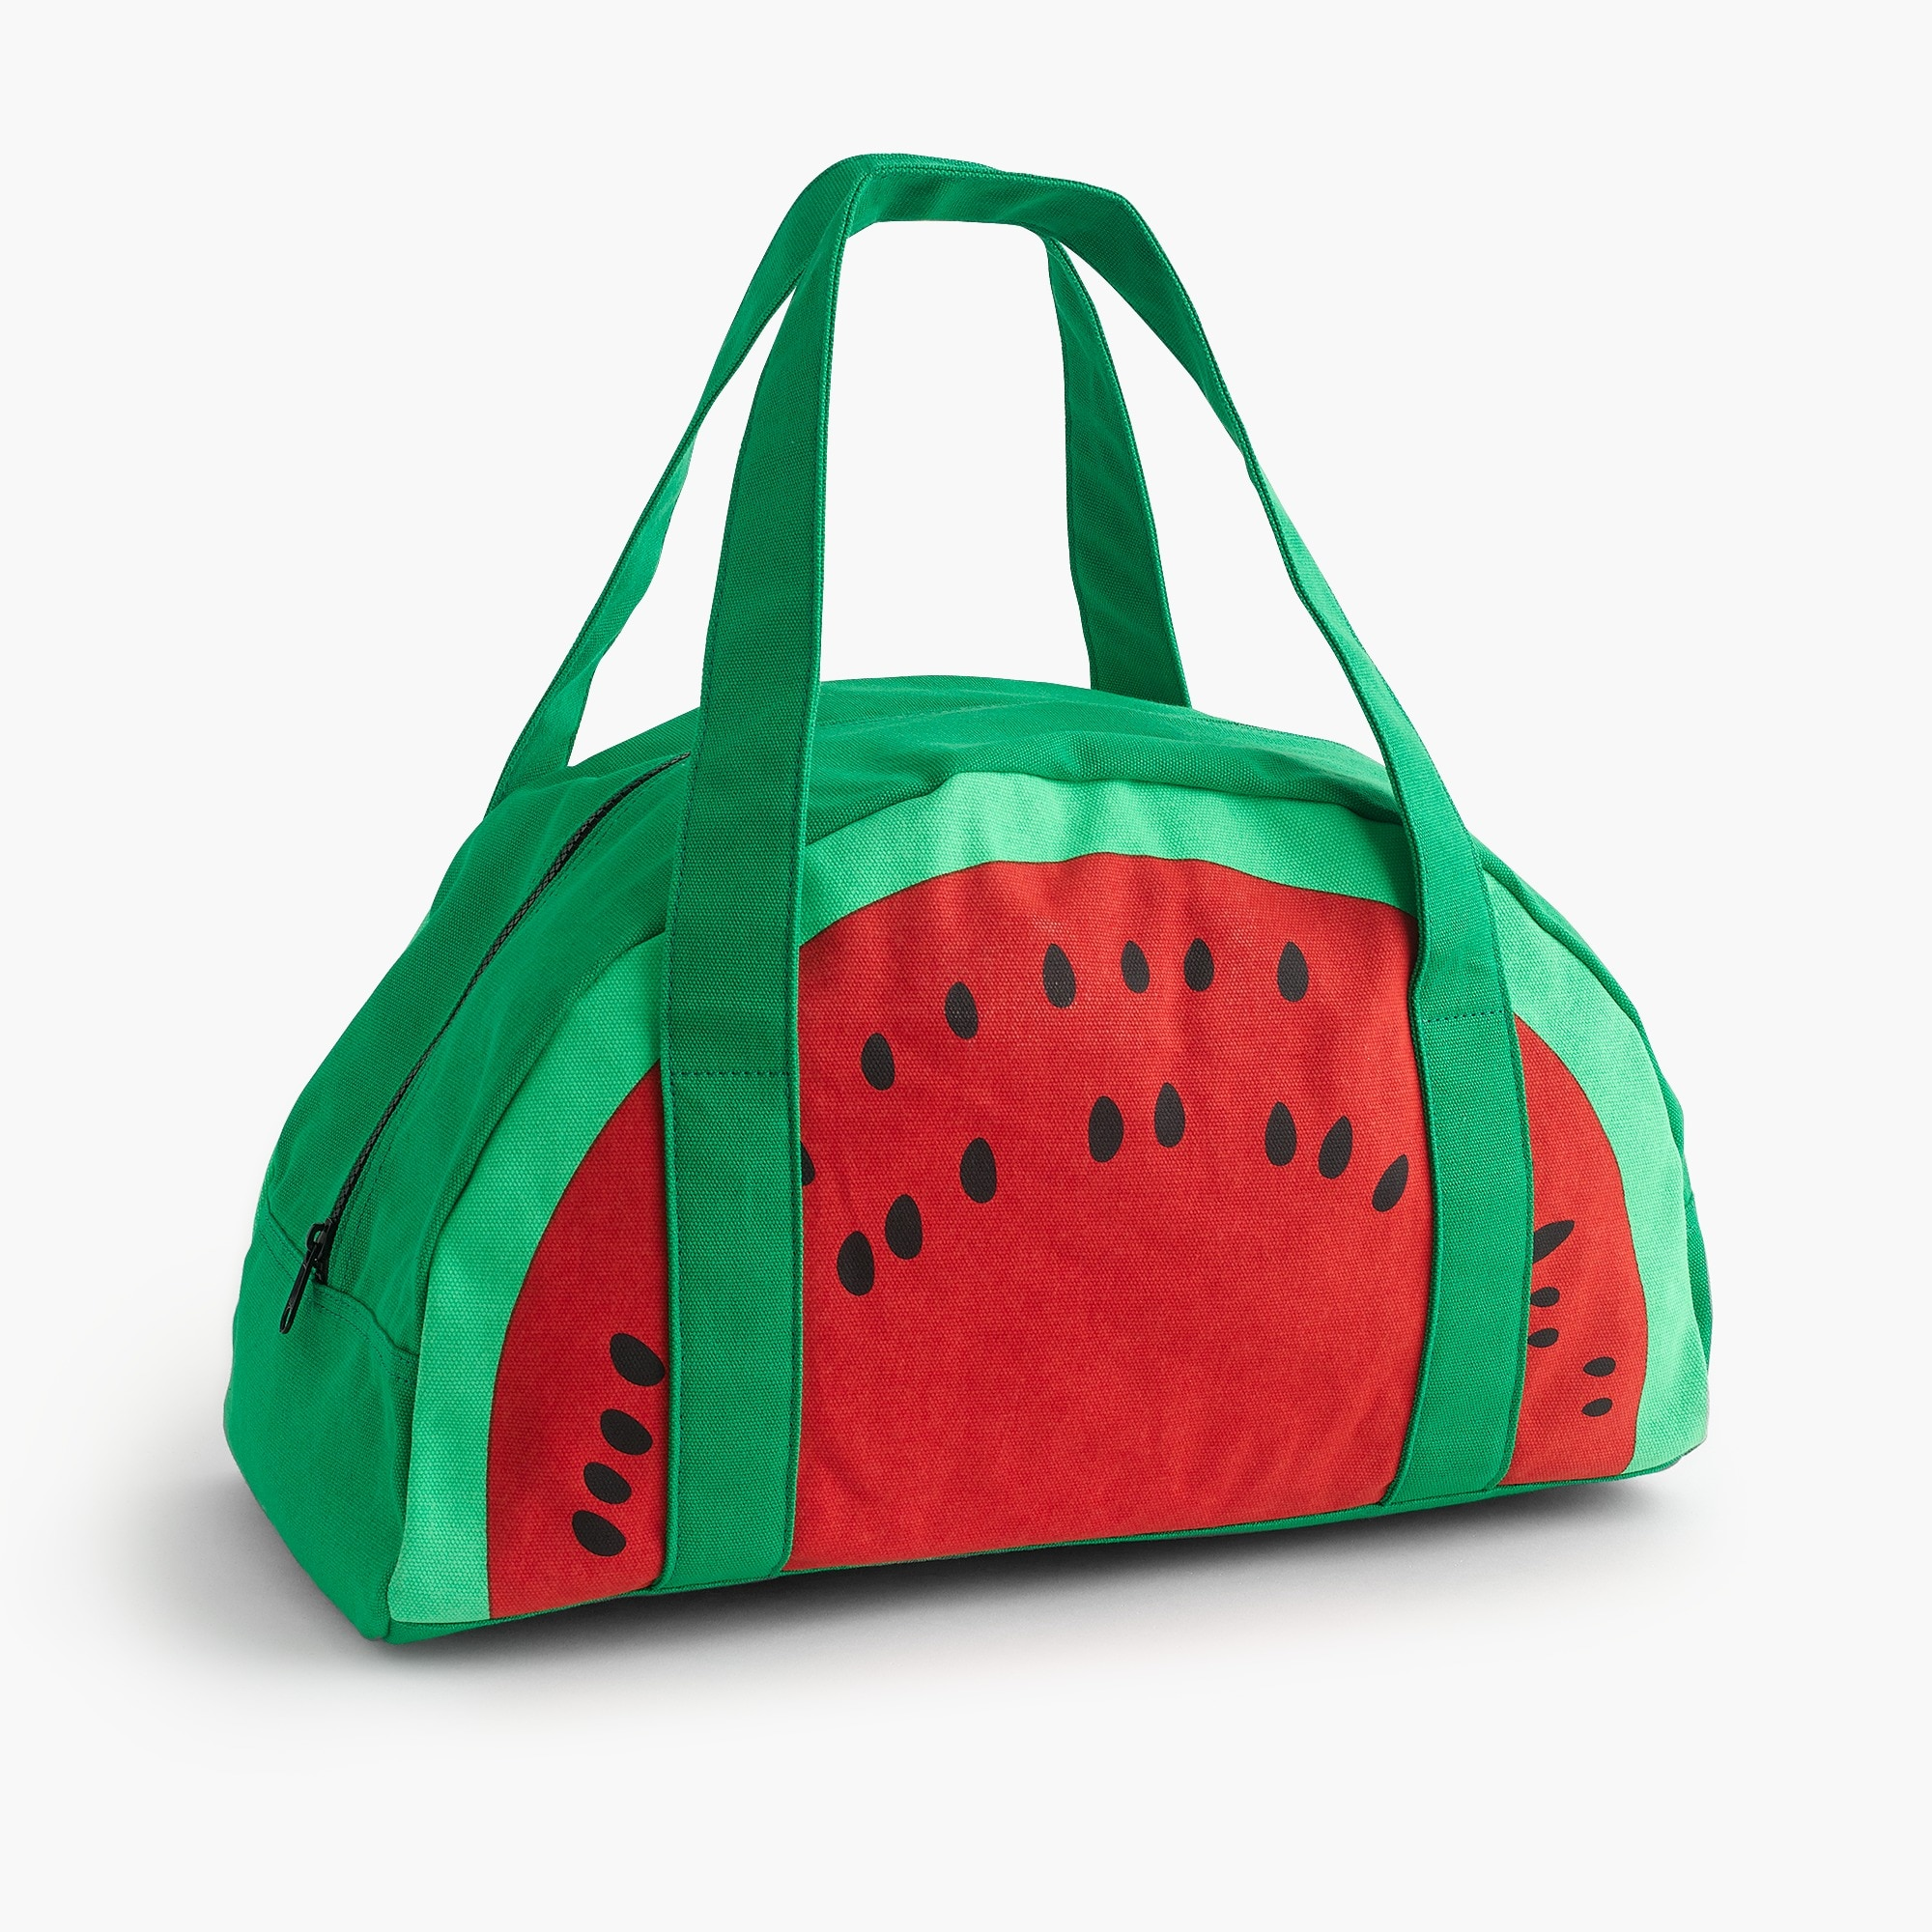 Image 1 for Girls' watermelon overnight bag